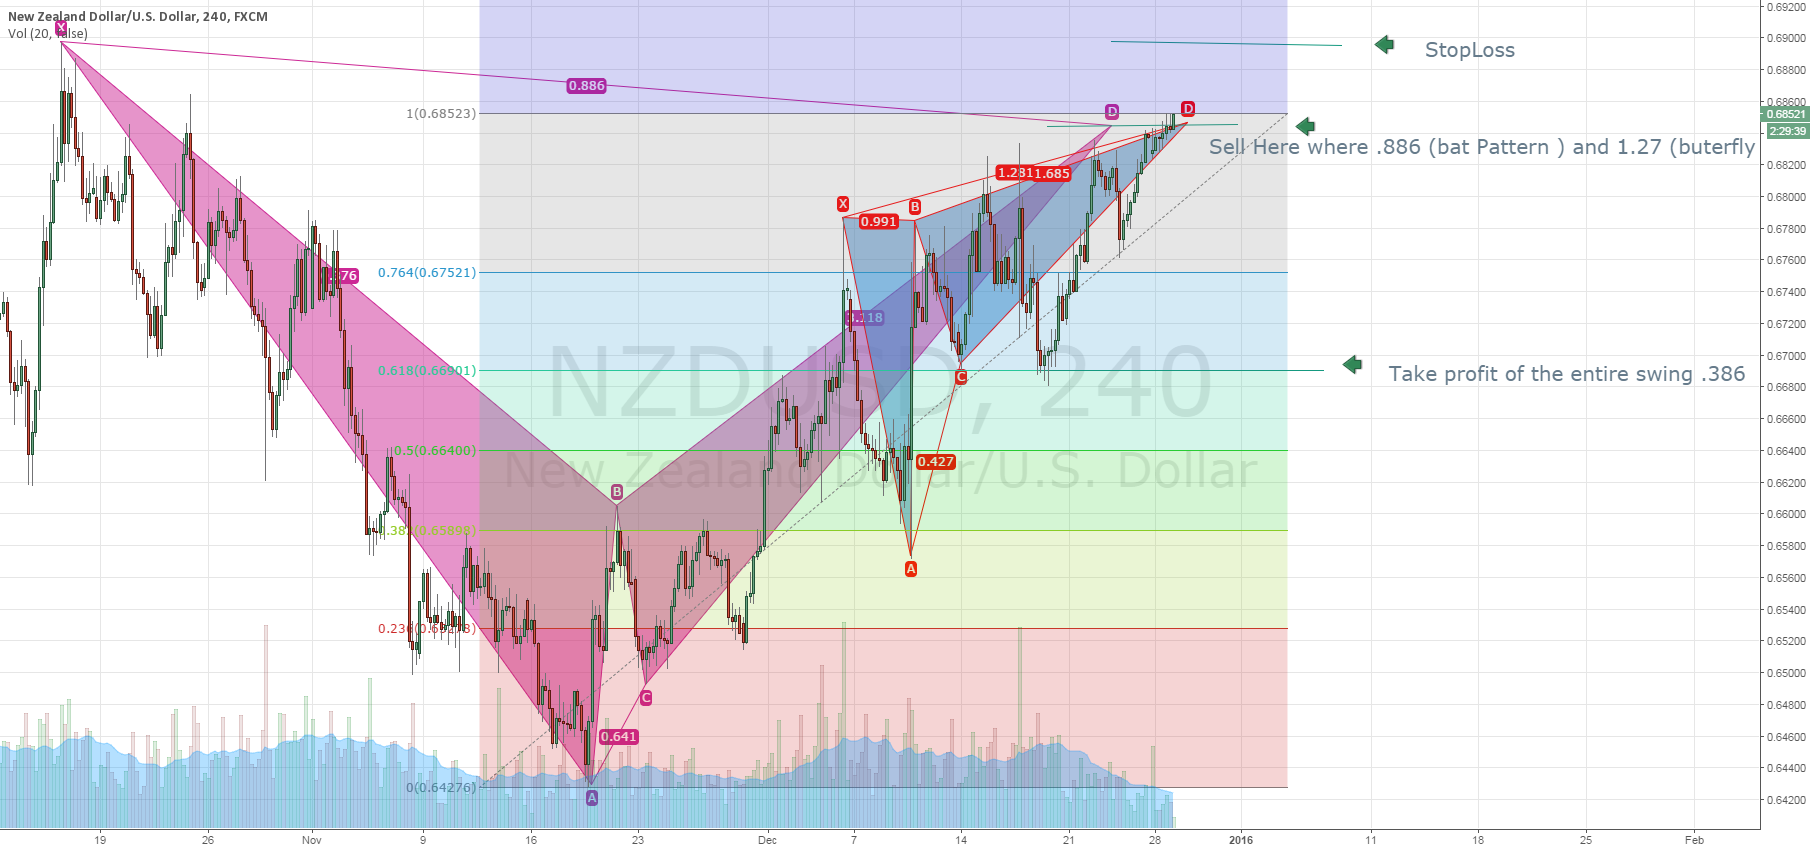 Very Nice short here in Nzd-usd! Butterfly and Bat Pattern!